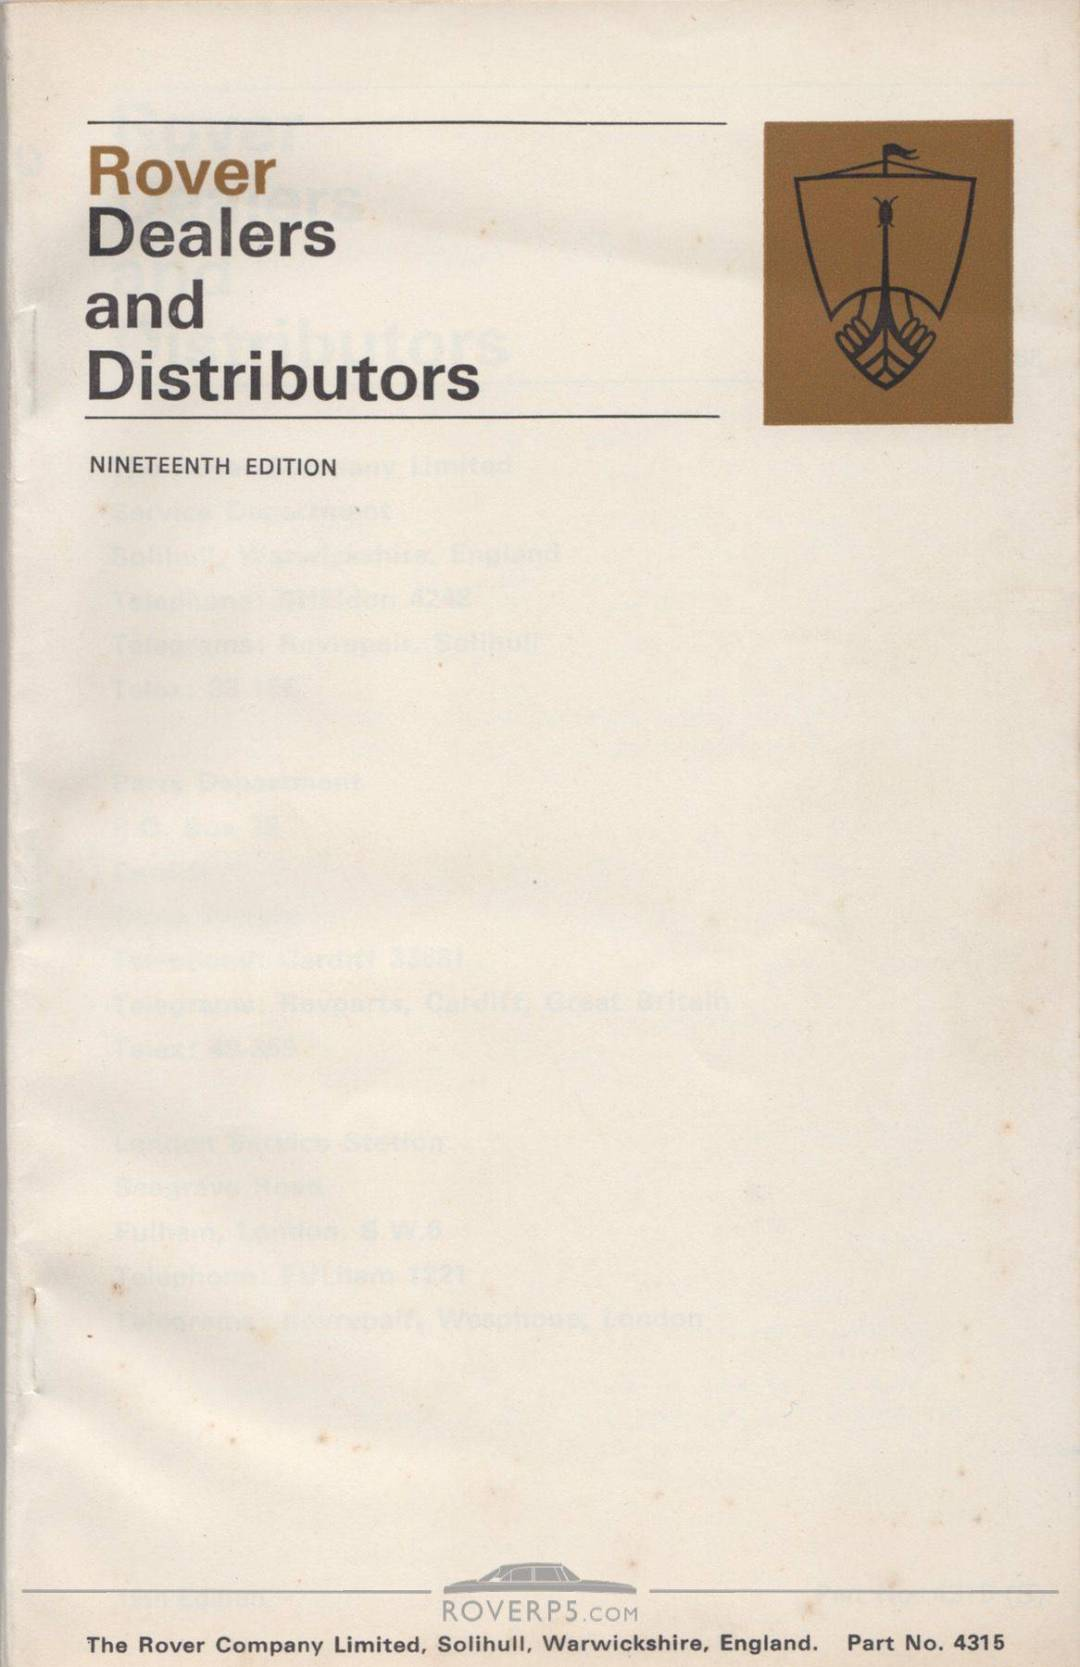 Literature Pack - 1968 - Rover Dealers and Distributors - Front Cover